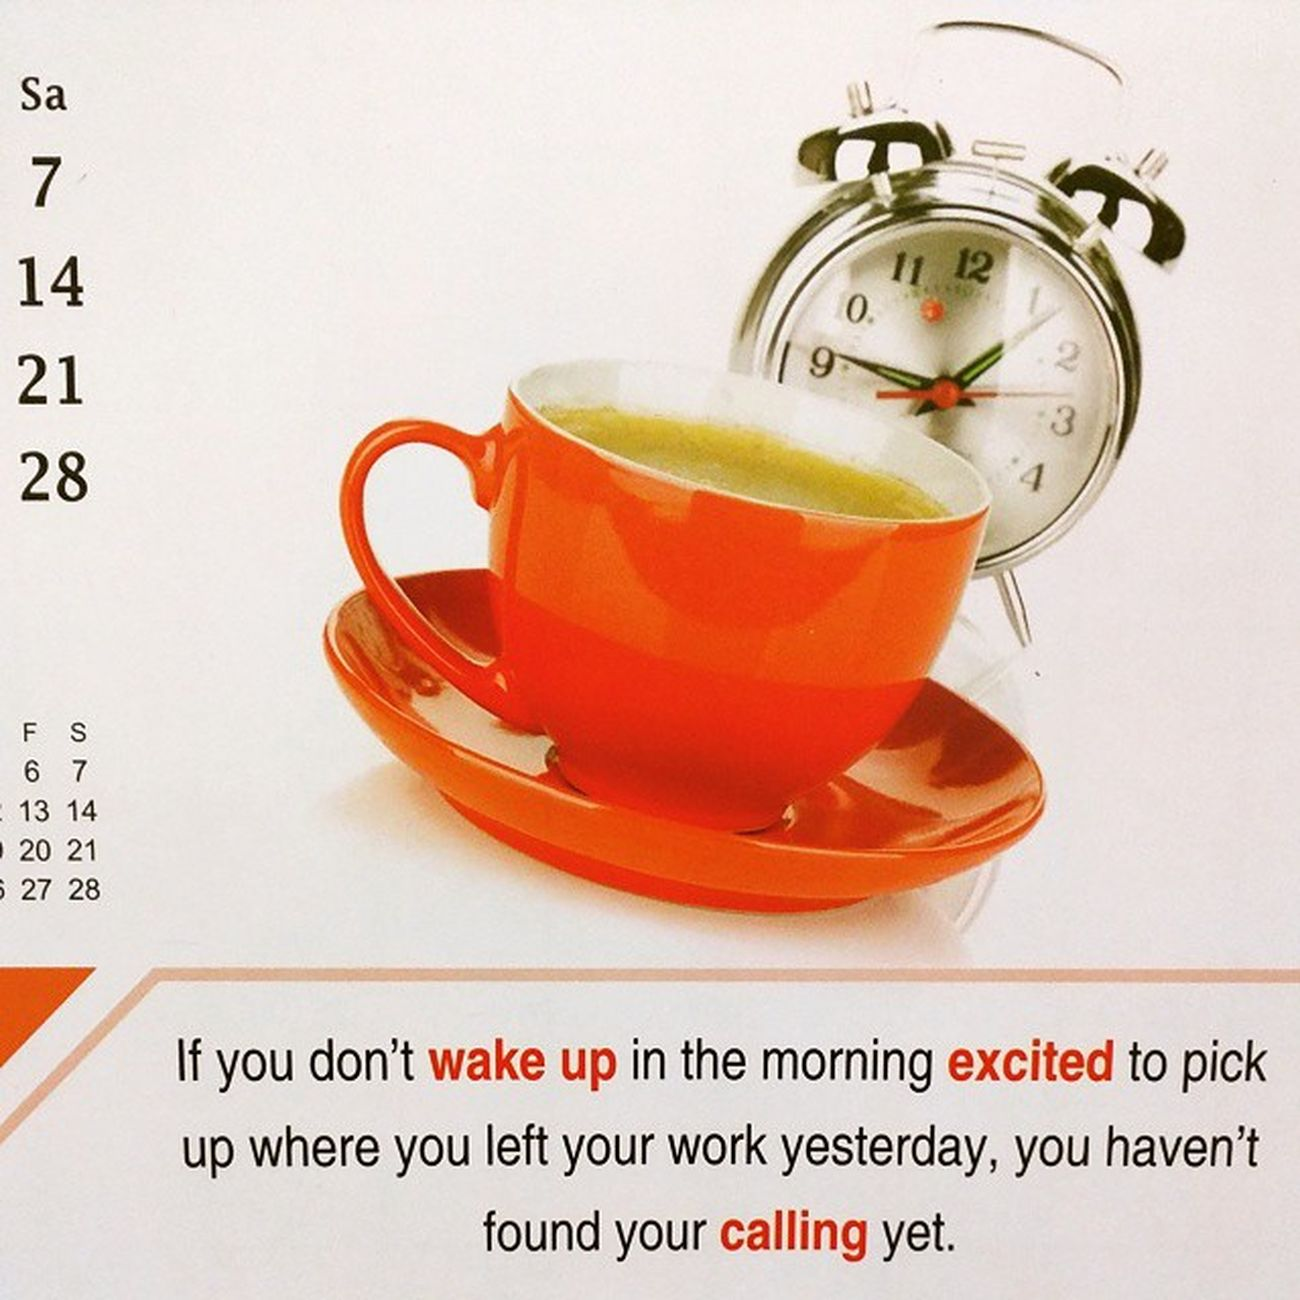 Calendar wisdom, so apt. Good morning and have a productive day ☺